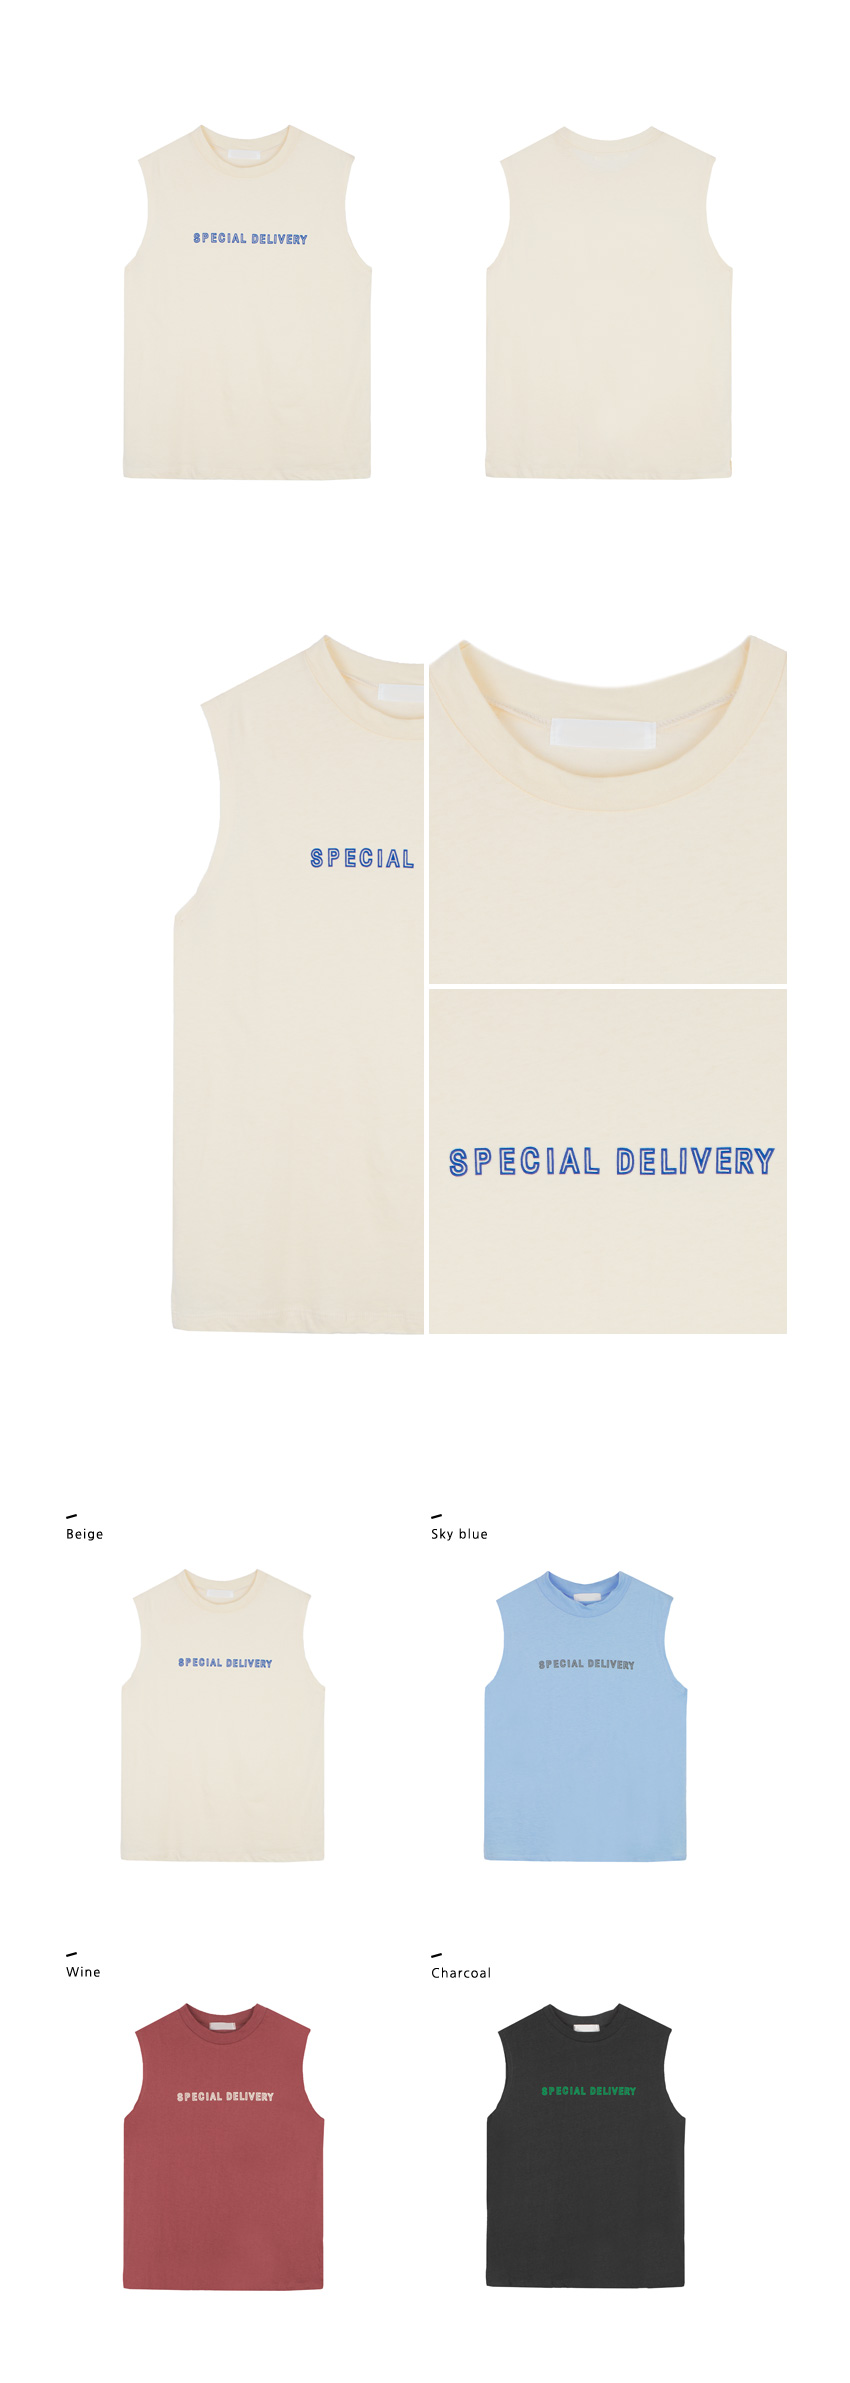 SPECIAL DELIVERY Print Sleeveless Shirt|